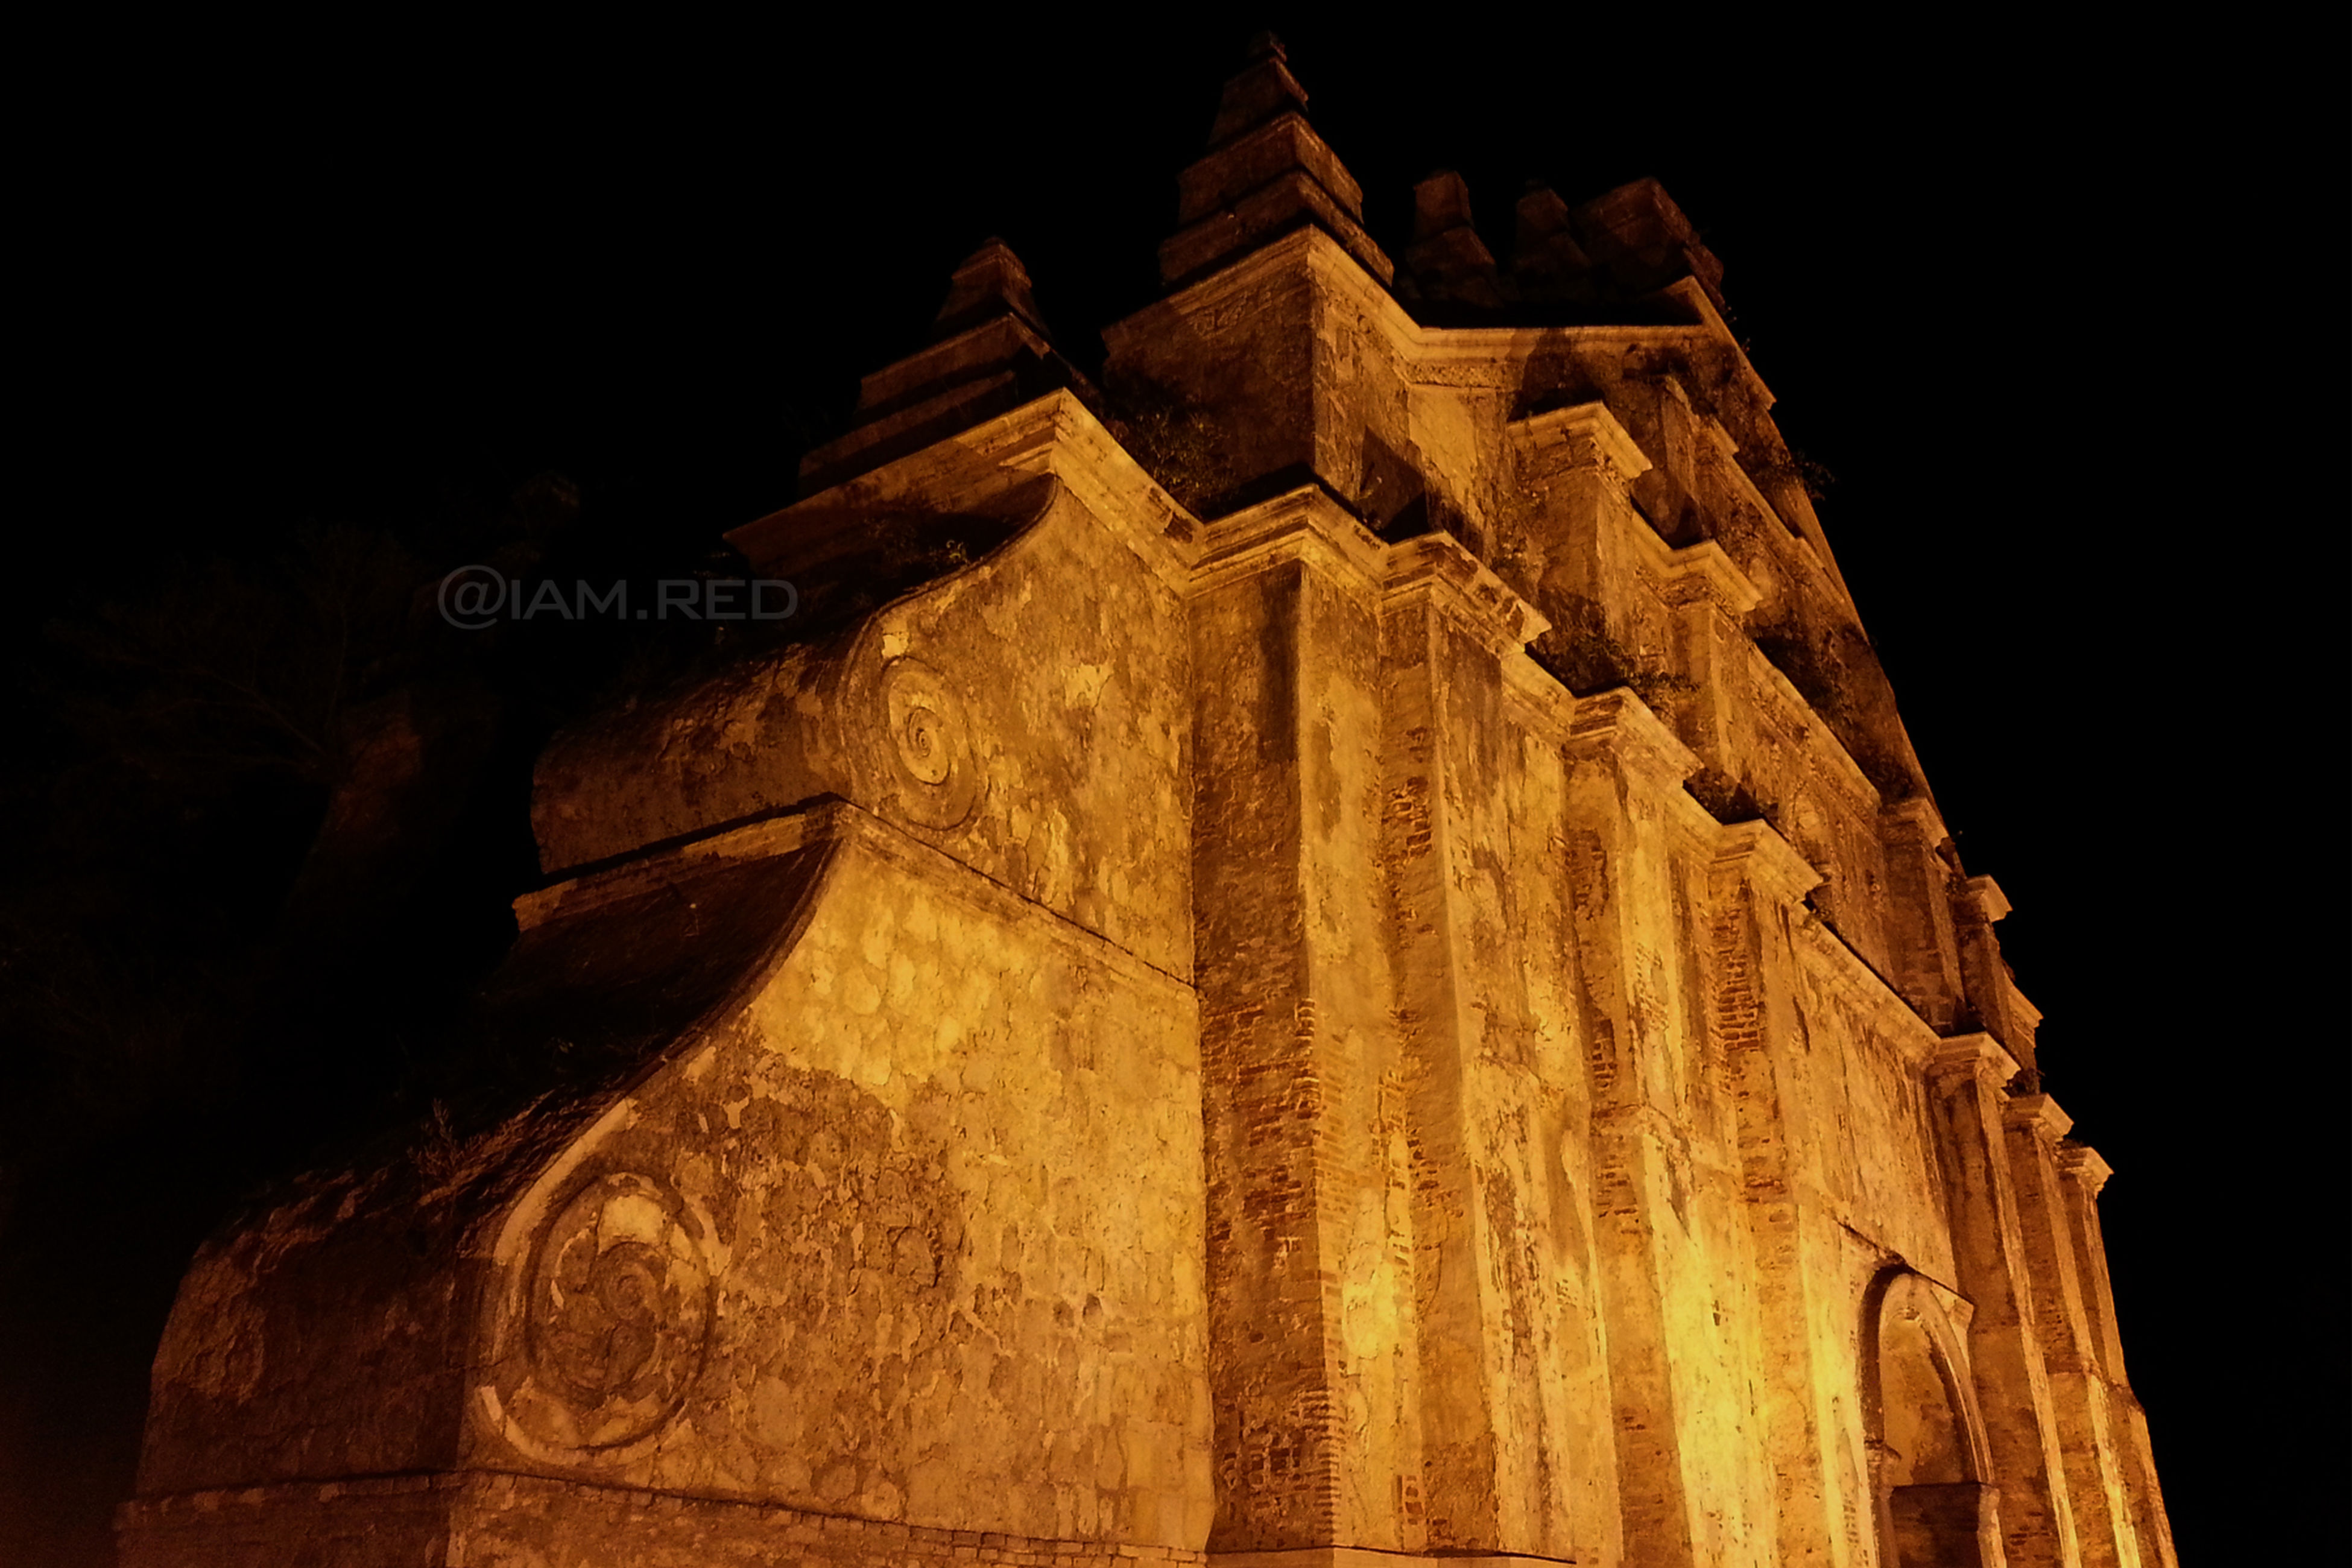 night, built structure, architecture, illuminated, building exterior, low angle view, history, clear sky, famous place, religion, travel destinations, old, ancient, text, spirituality, place of worship, outdoors, dark, no people, temple - building